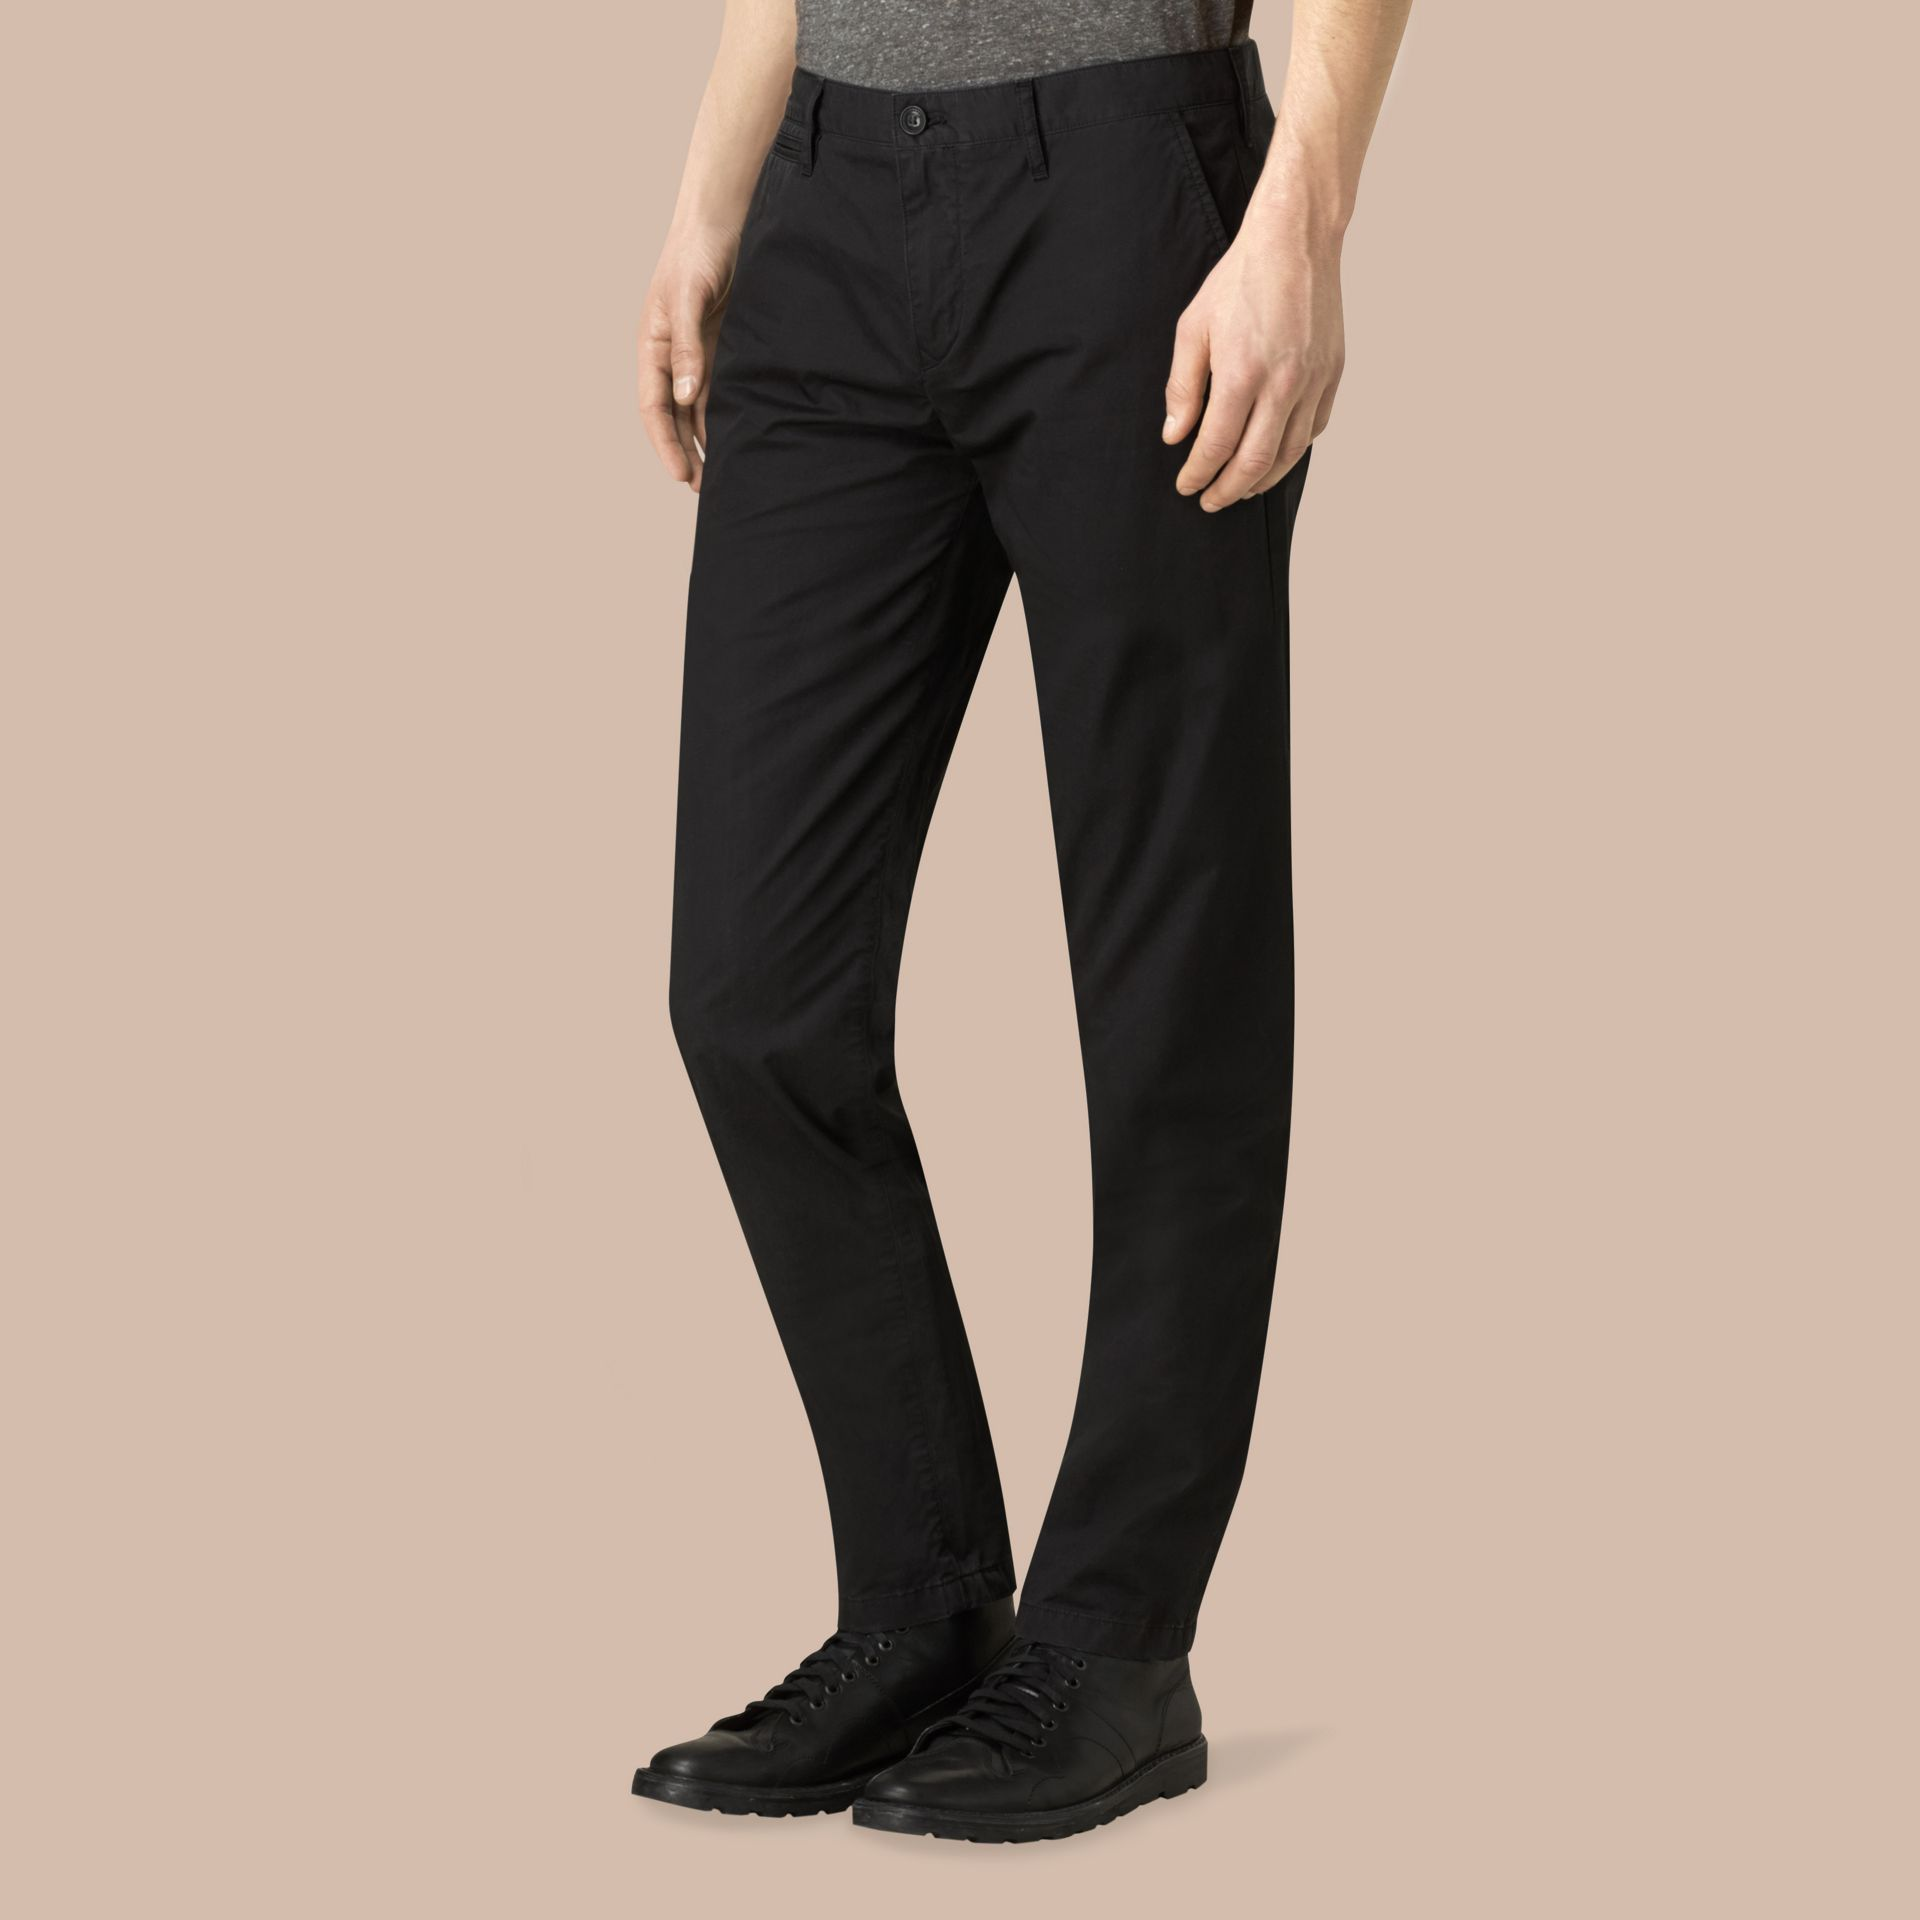 Pantalon chino slim en coton Noir - photo de la galerie 3